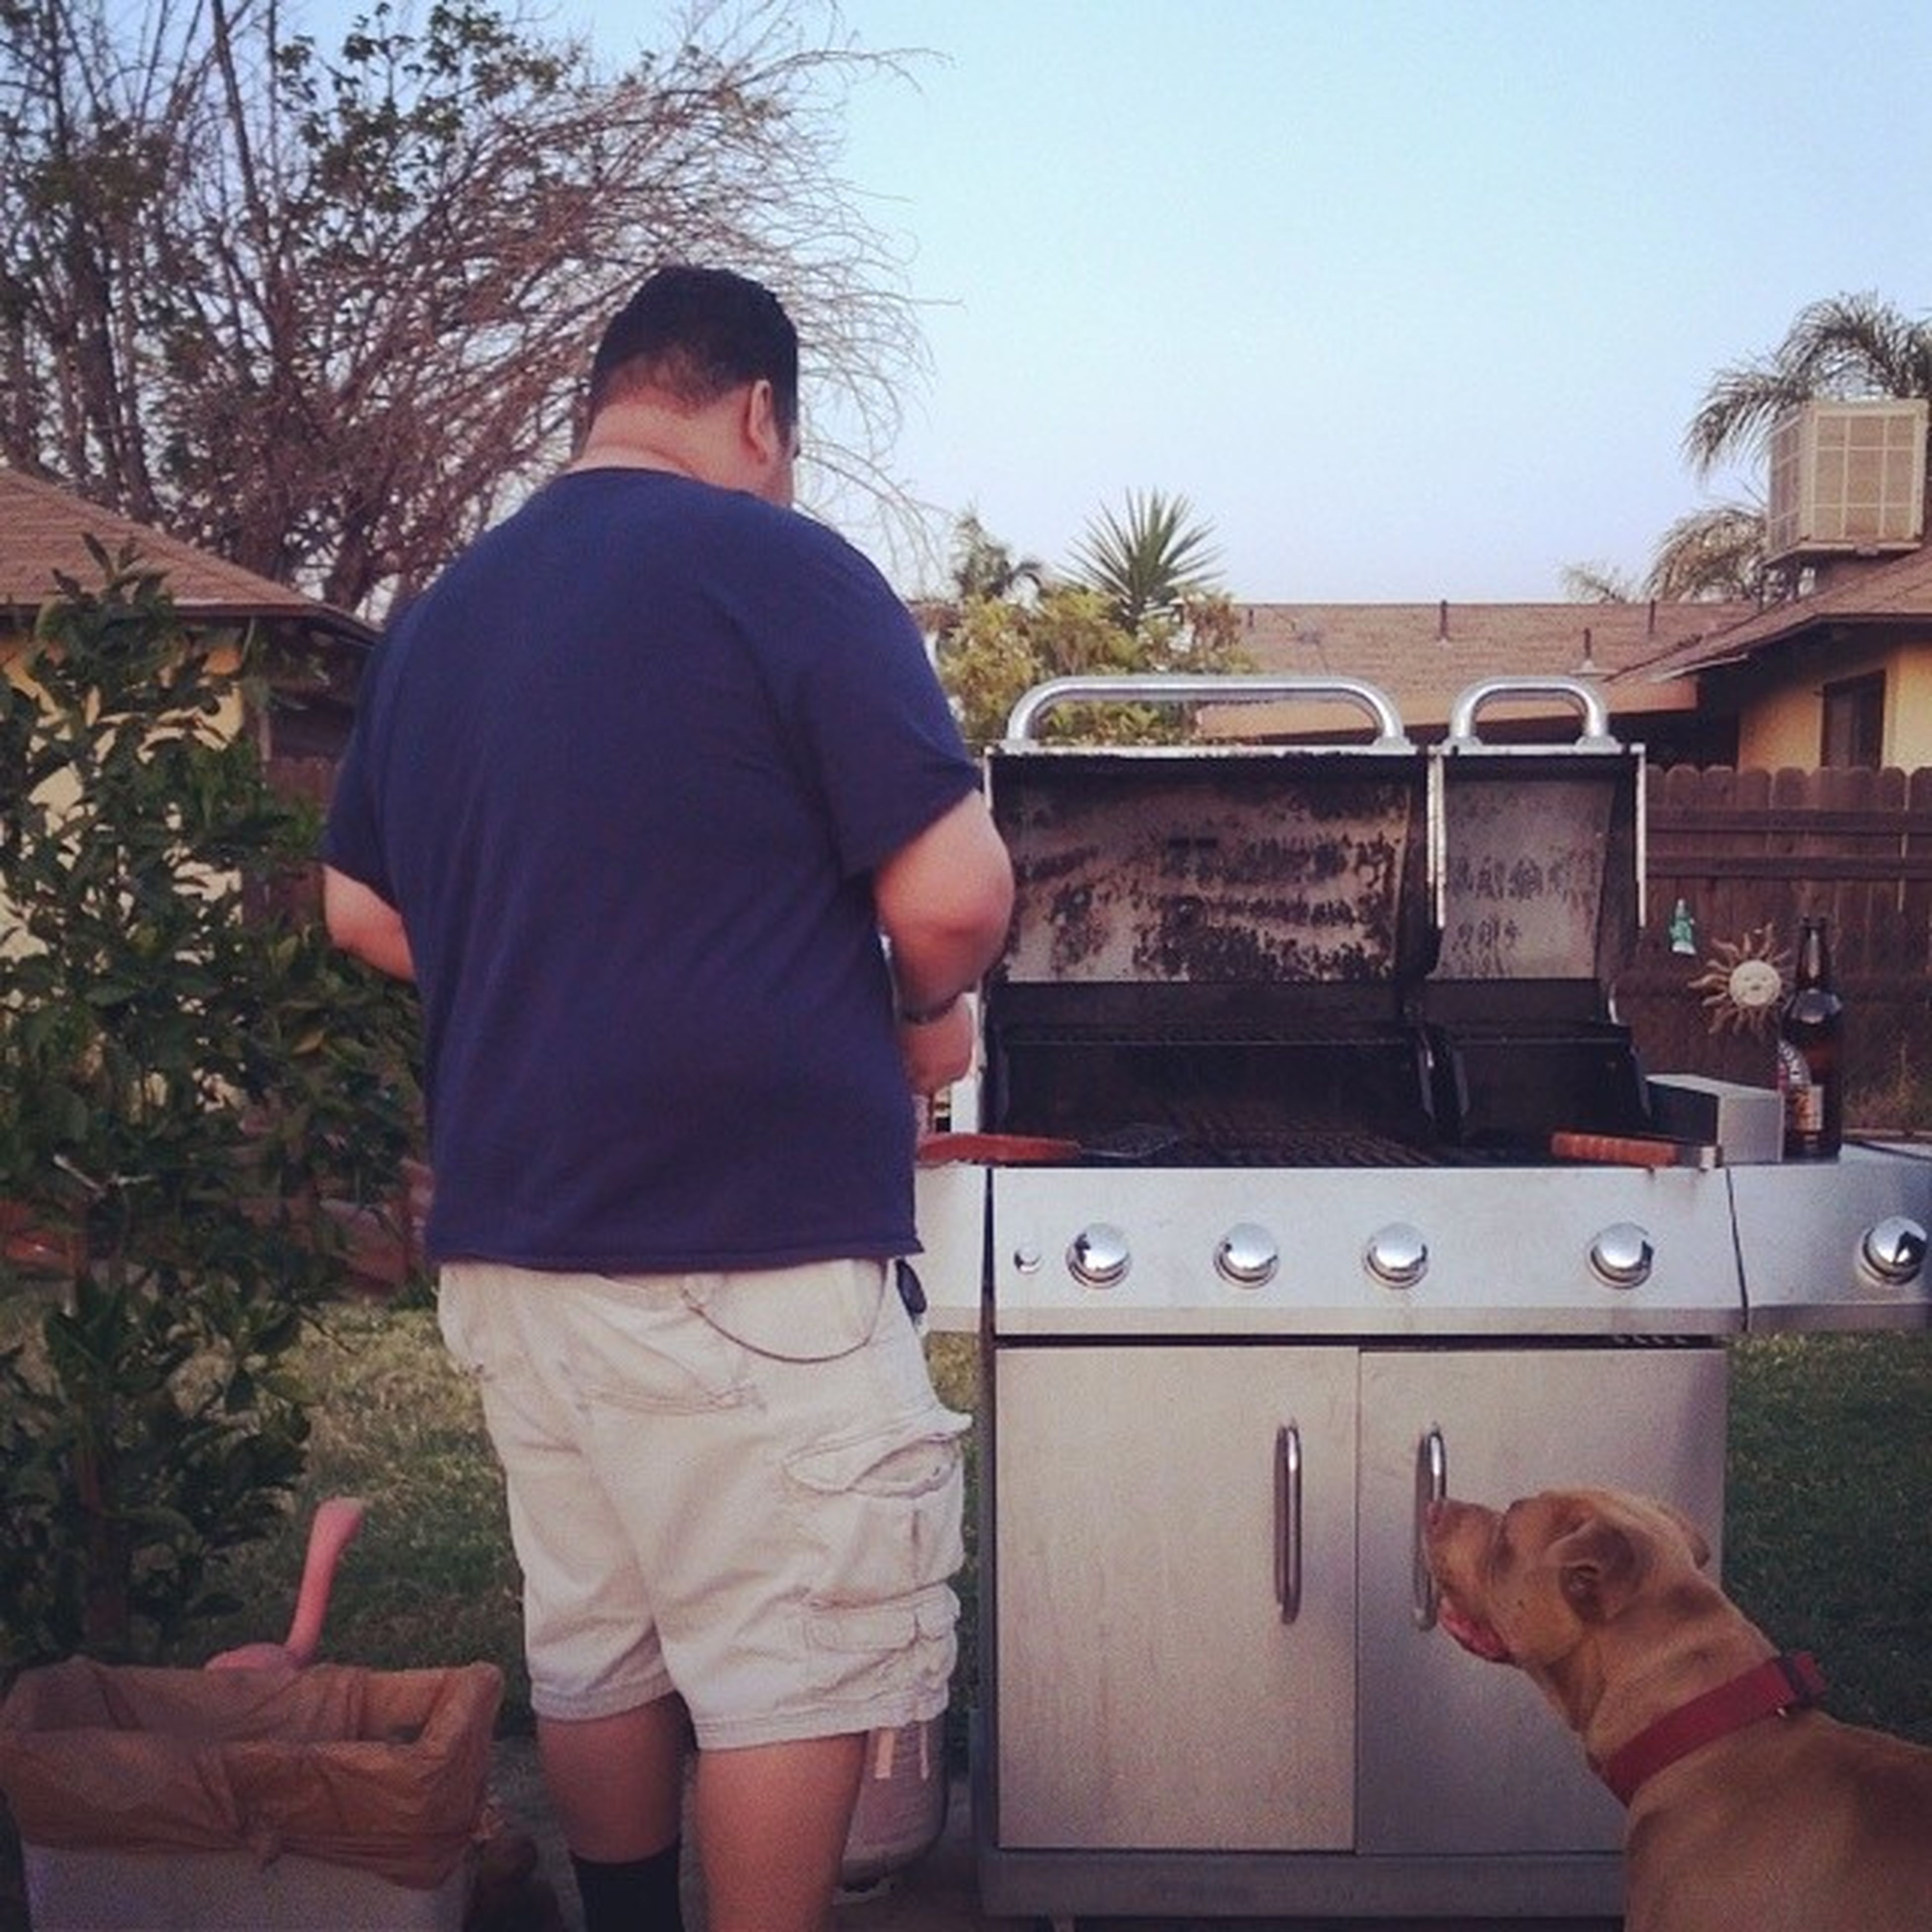 Words cannot describe how excited I am about @predzridez grilling us some of his amazing burgers! BBQ Grilling FuckEasterrules Omnomnoms